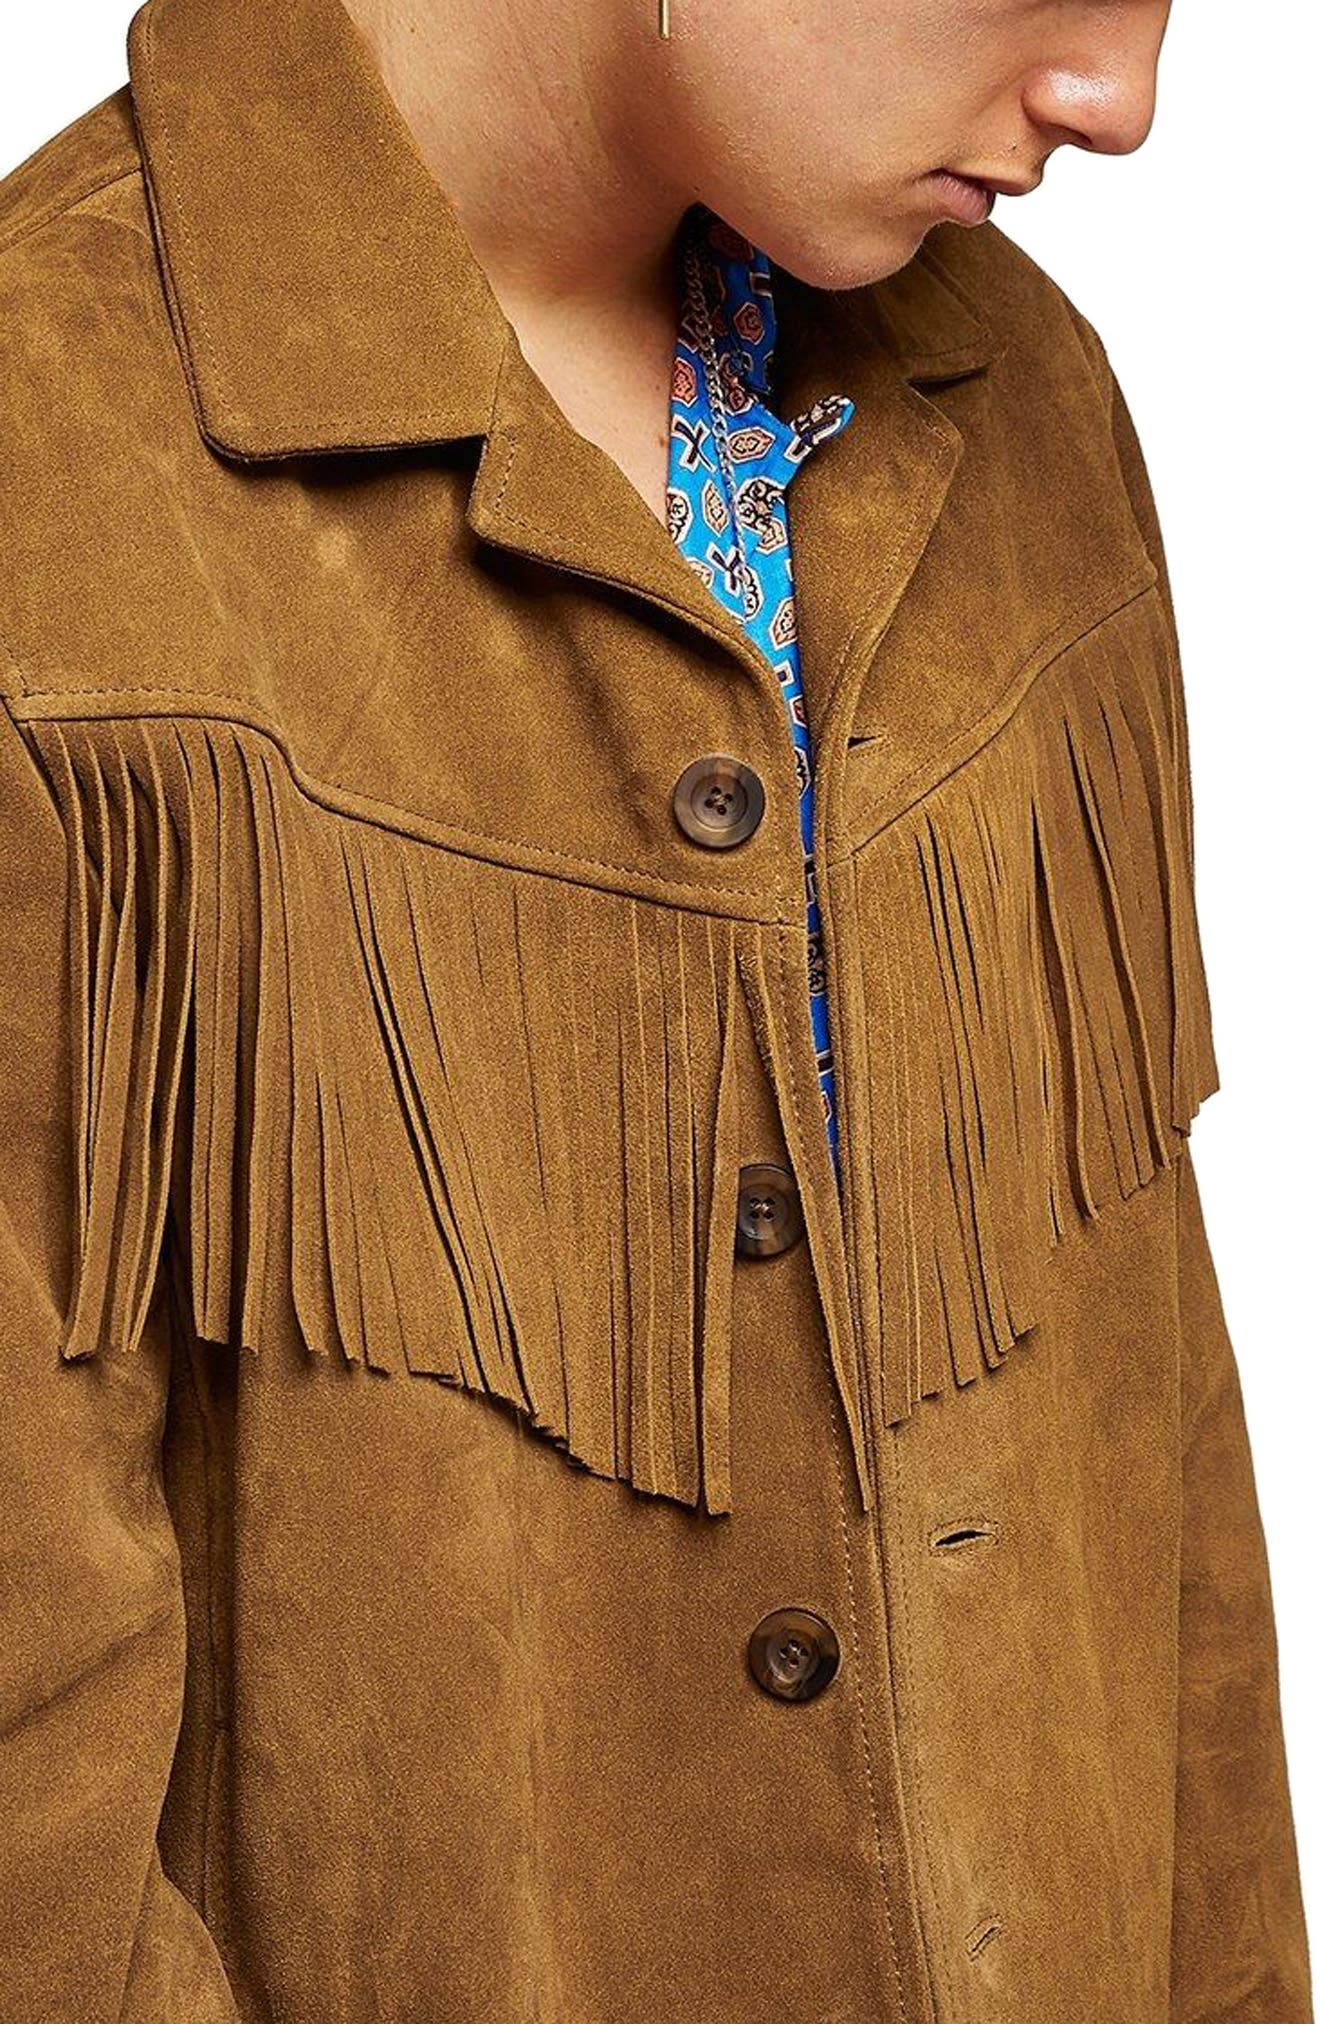 Fringed Suede Western Jacket,                             Main thumbnail 1, color,                             Brown